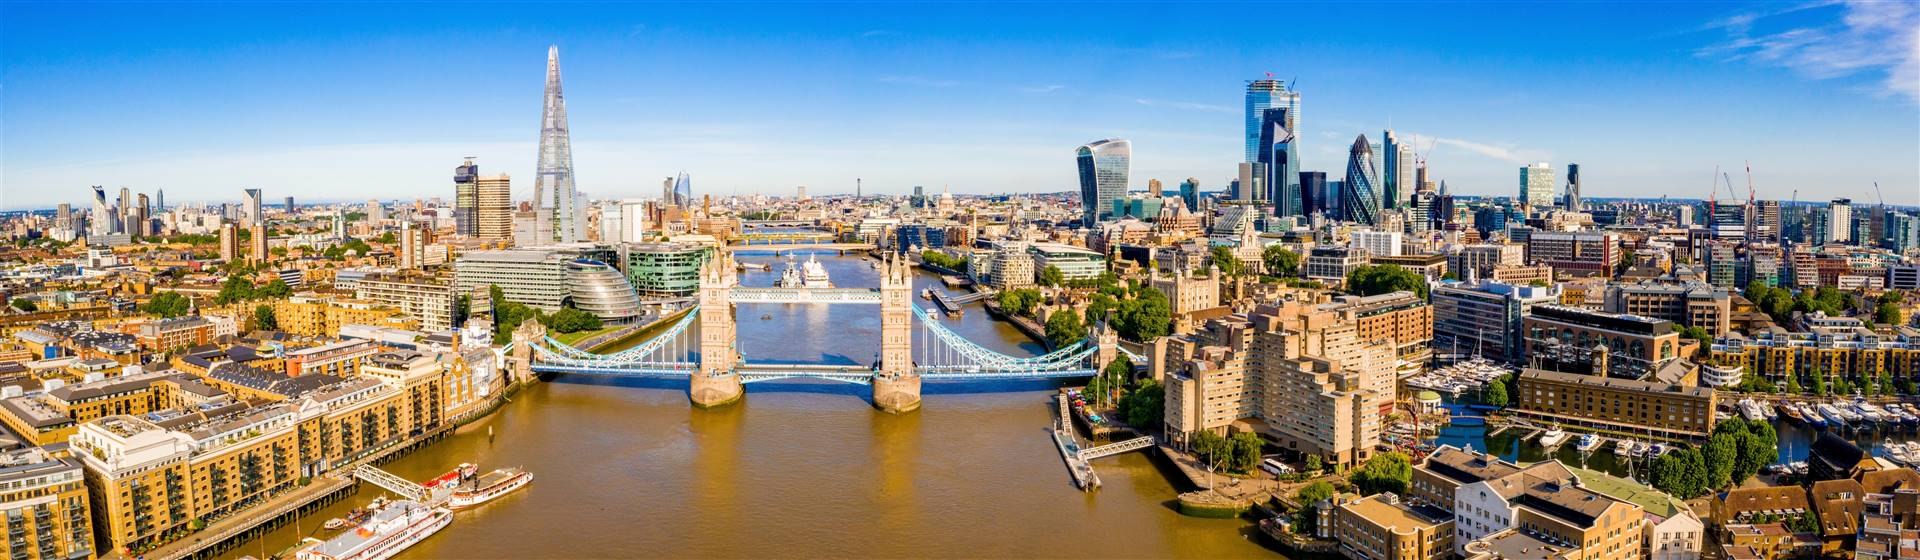 Aerial panorama of Tower Bridge and The Shard, London